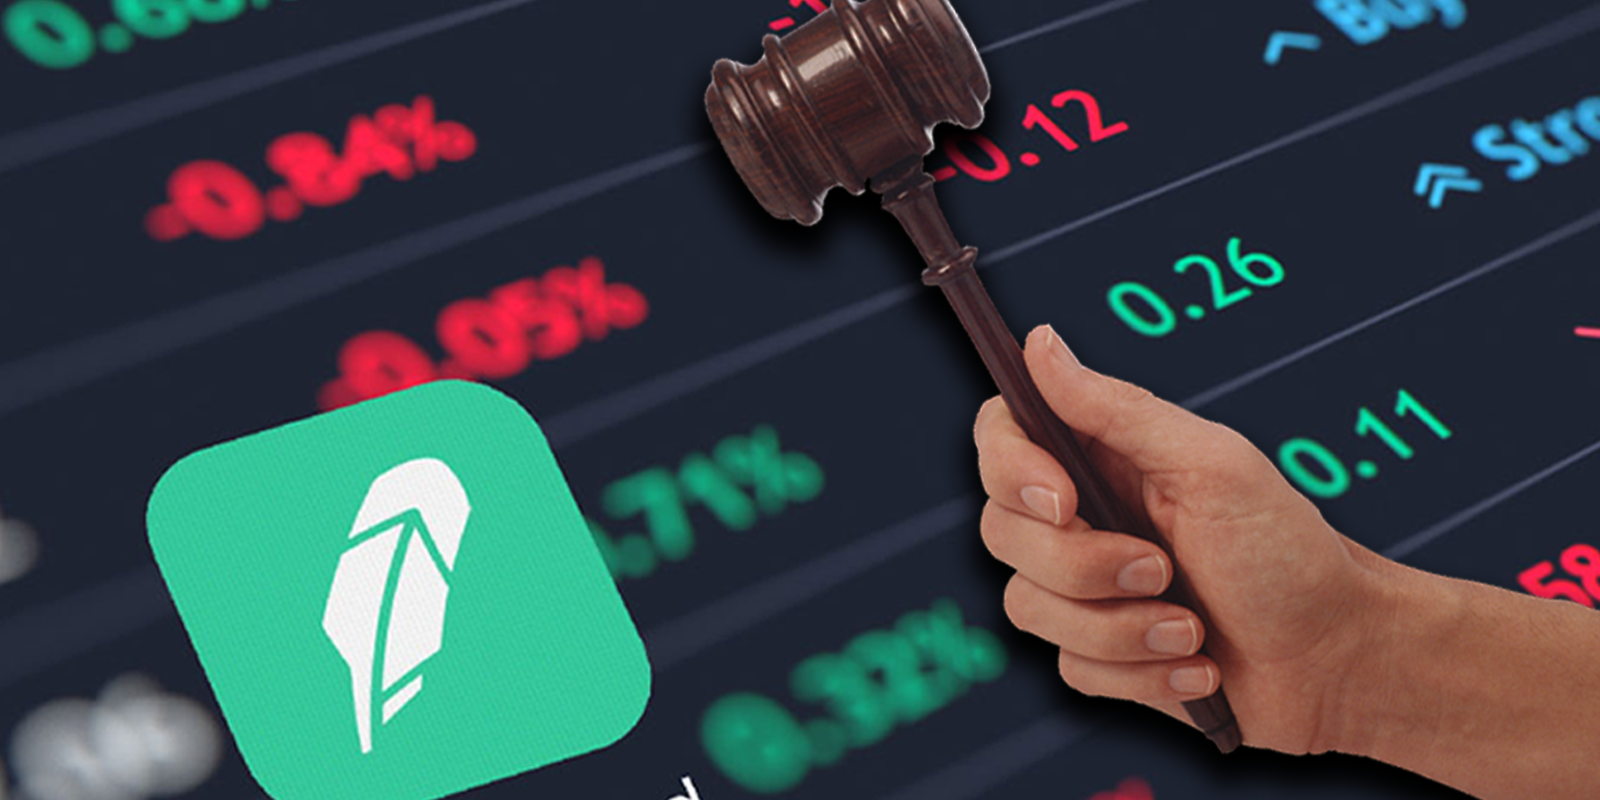 BREAKING: Class action lawsuit launched against Robinhood in New York